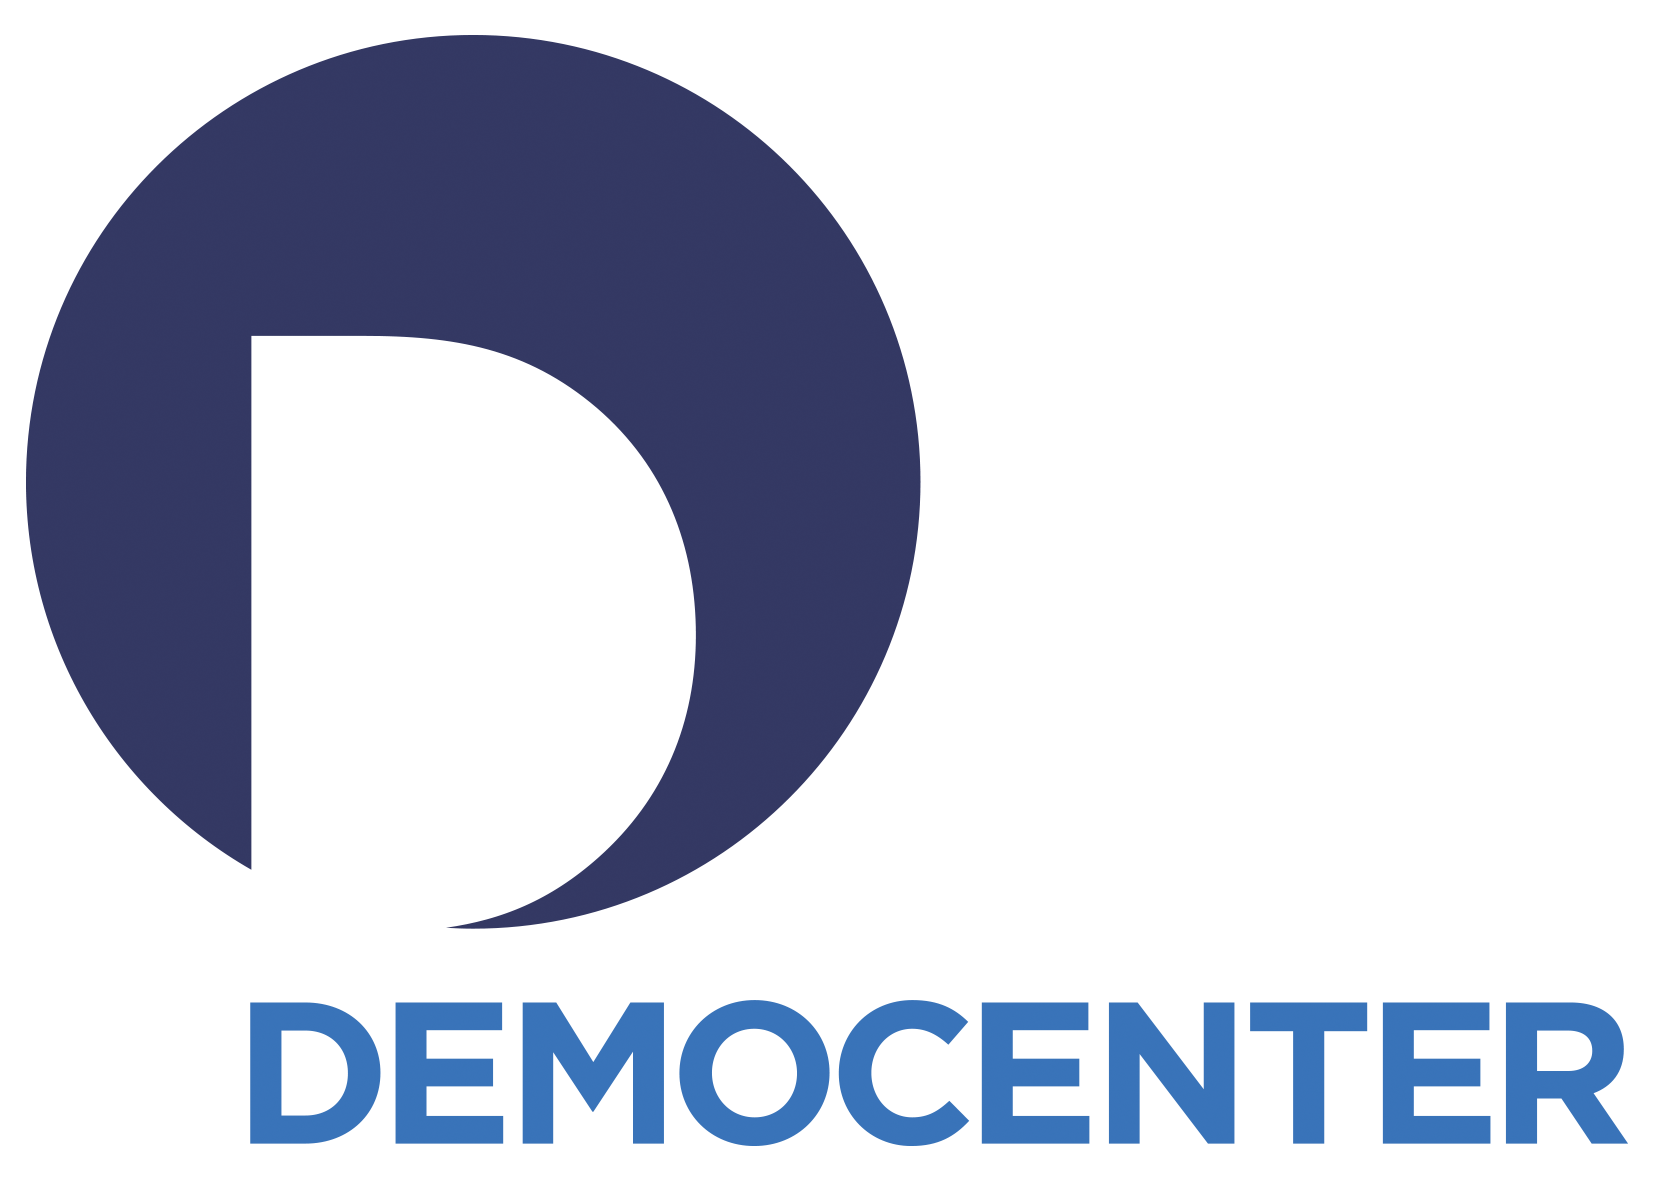 Democenter-Sipe Foundation